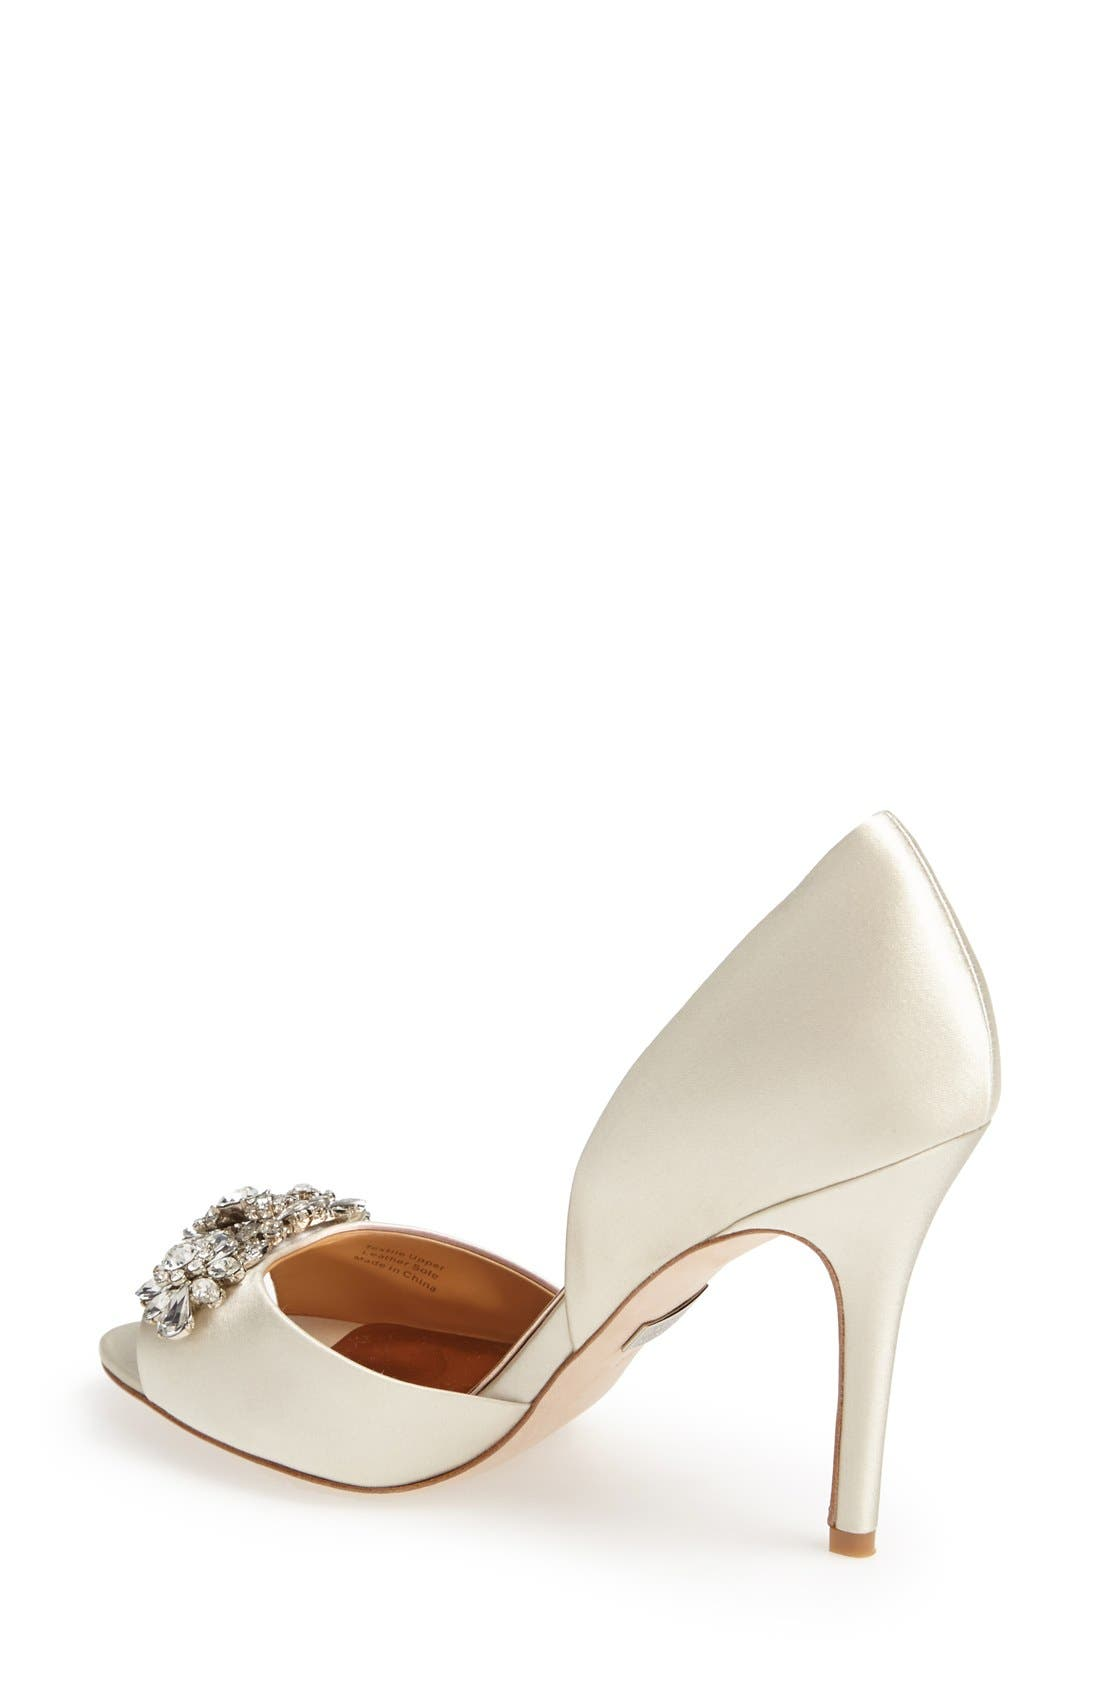 Badgley Mischka 'Giana' Satin d'Orsay Pump,                             Alternate thumbnail 2, color,                             901